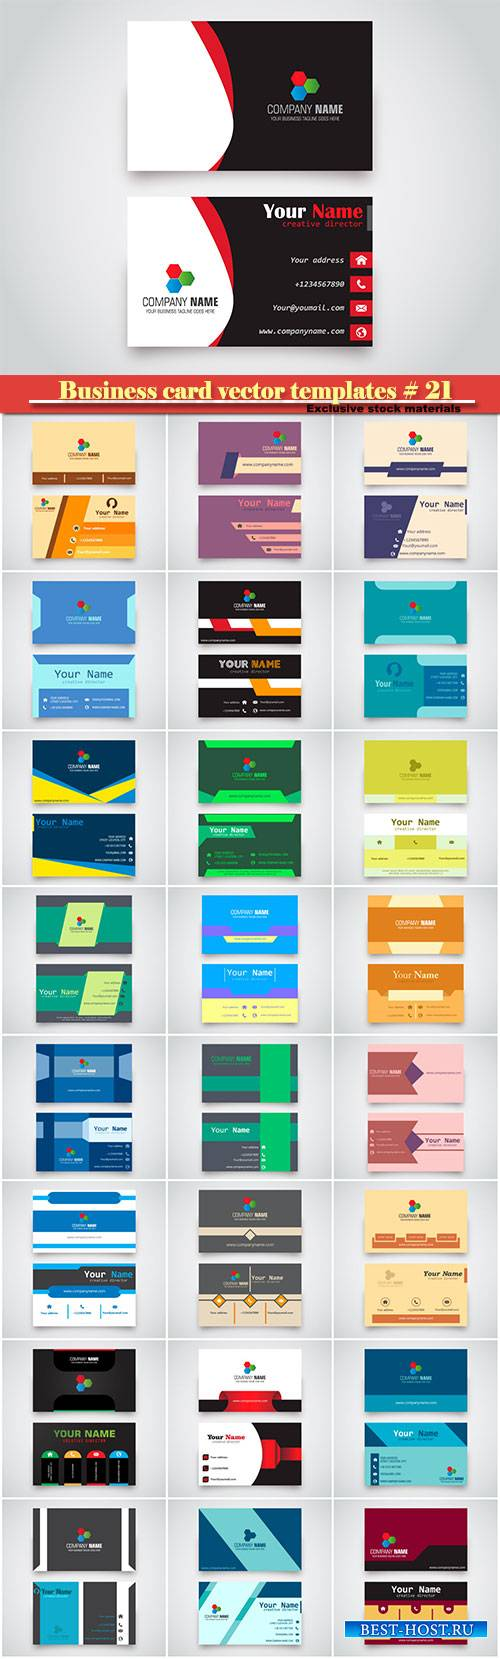 Business card vector templates # 21